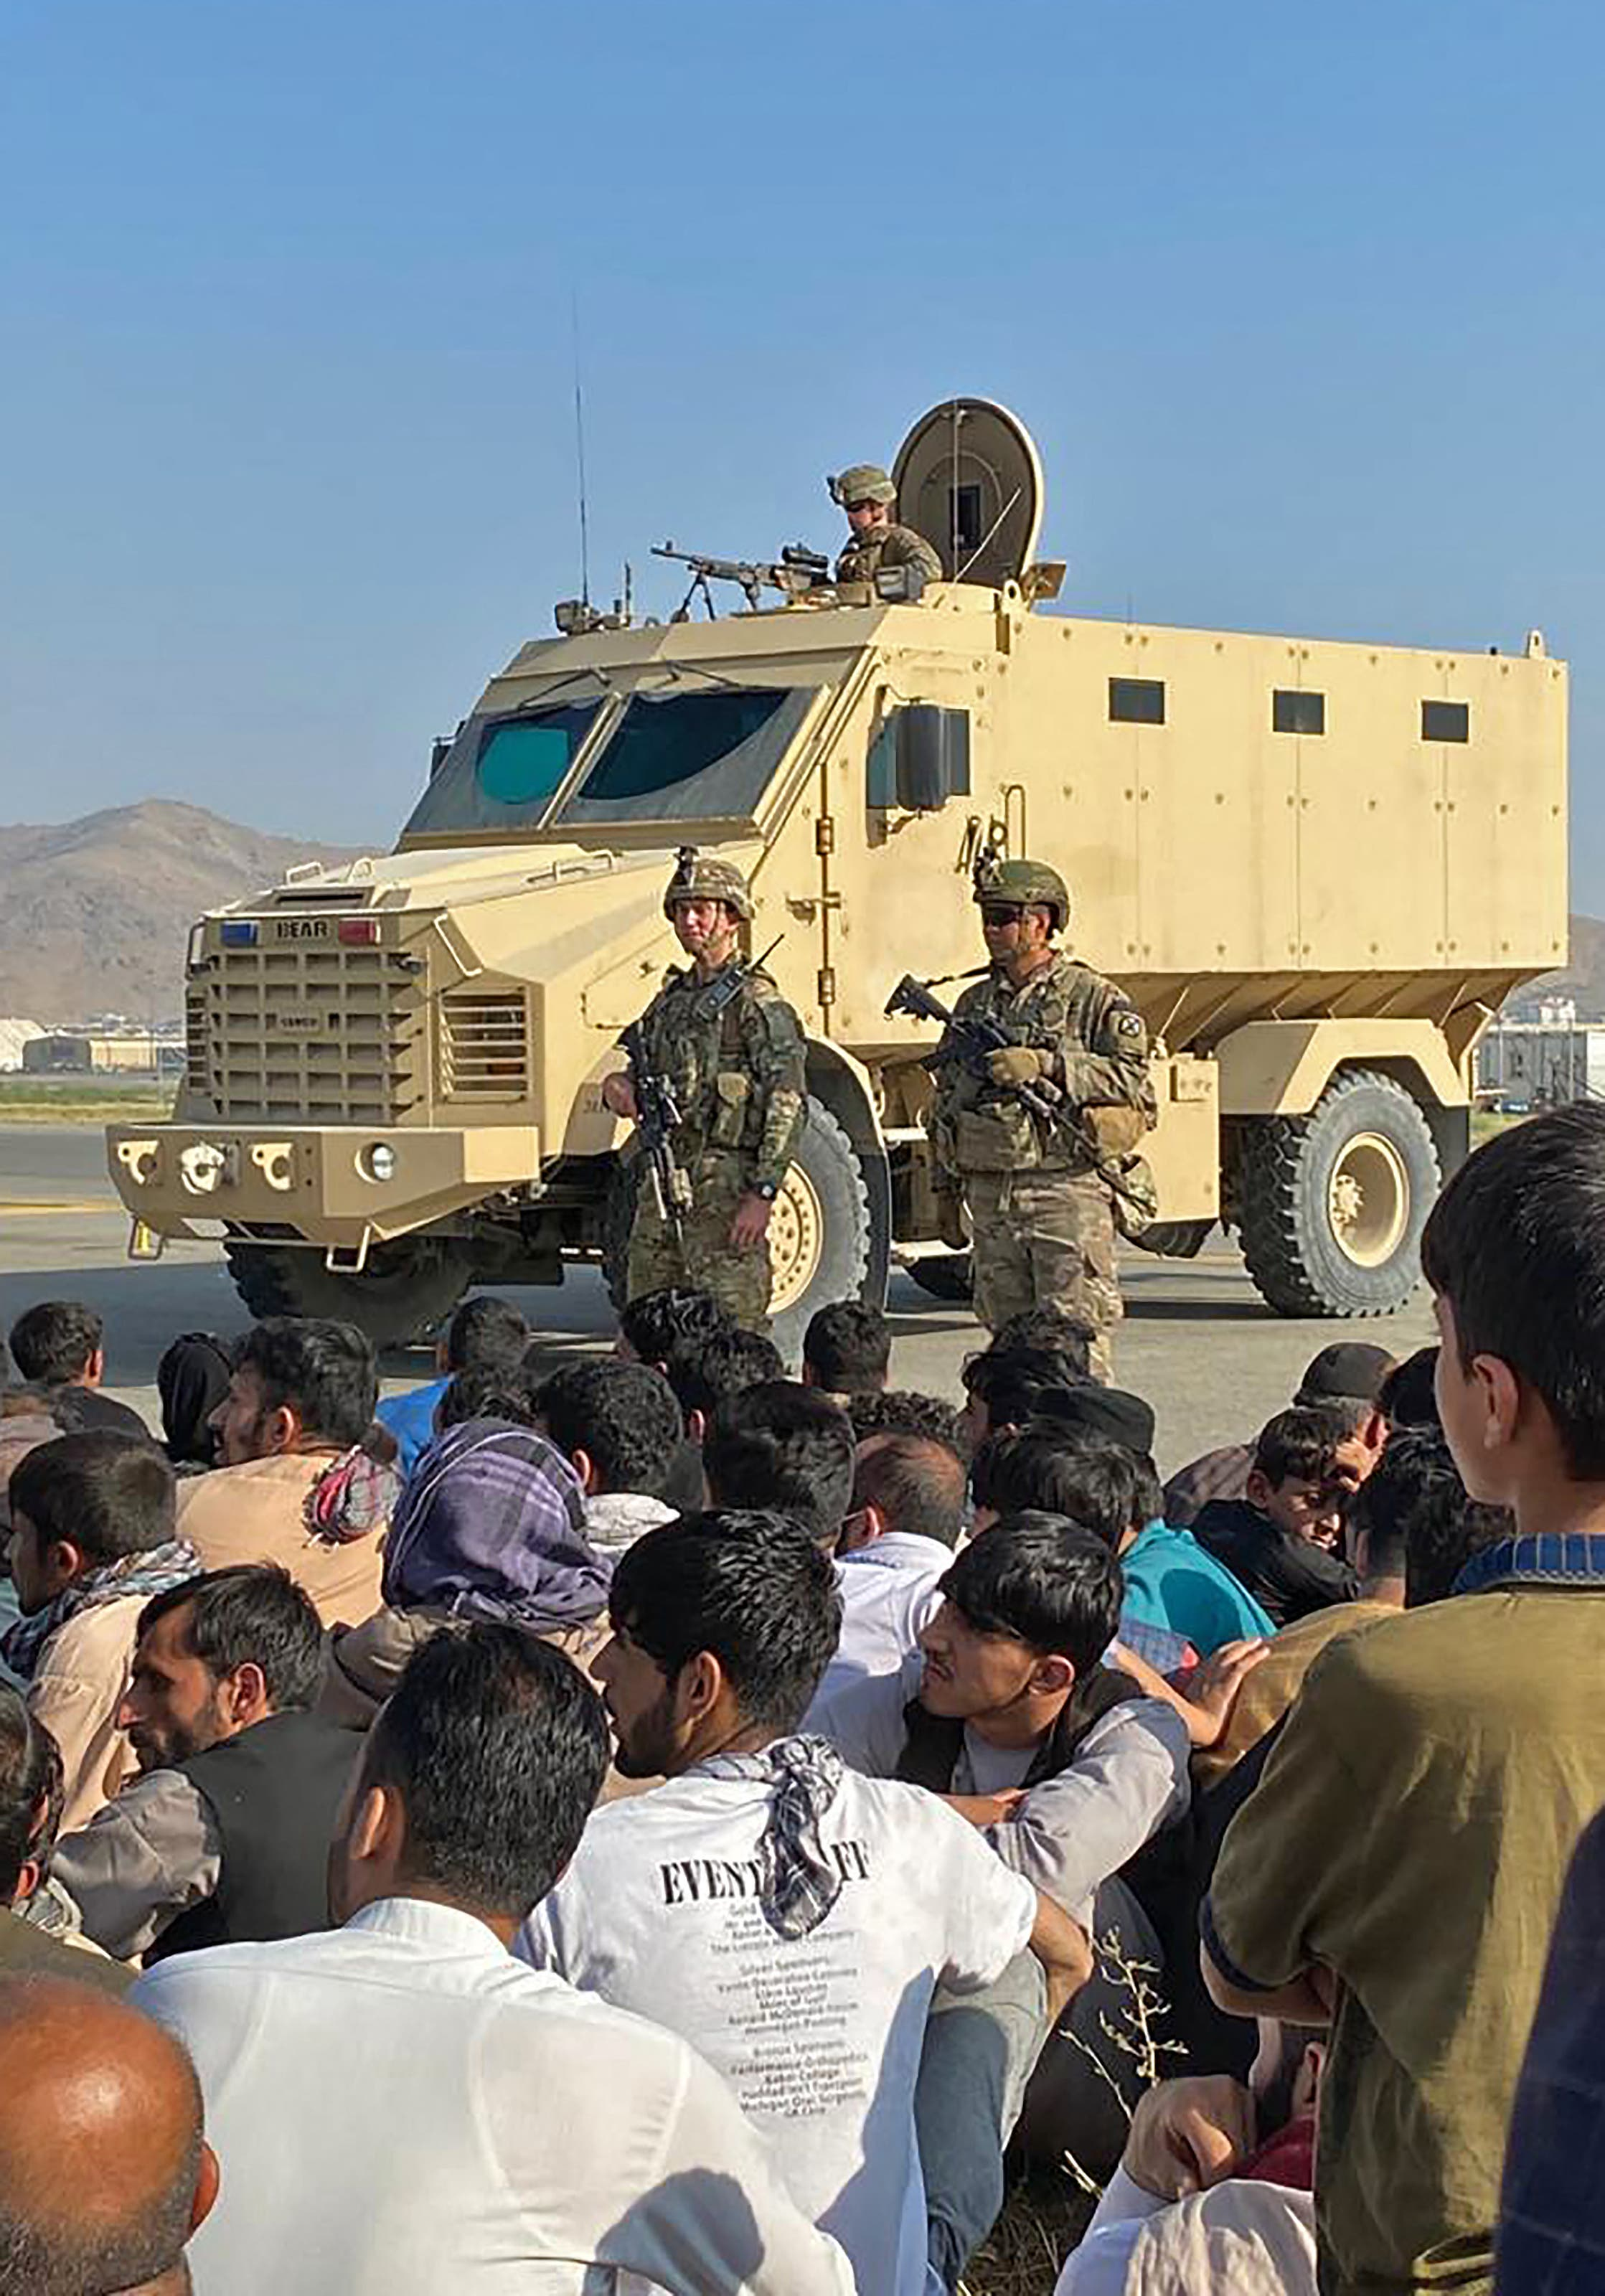 Afghans crowd at the airport as US soldiers stand guard in Kabul on August 16, 2021. (AFP)